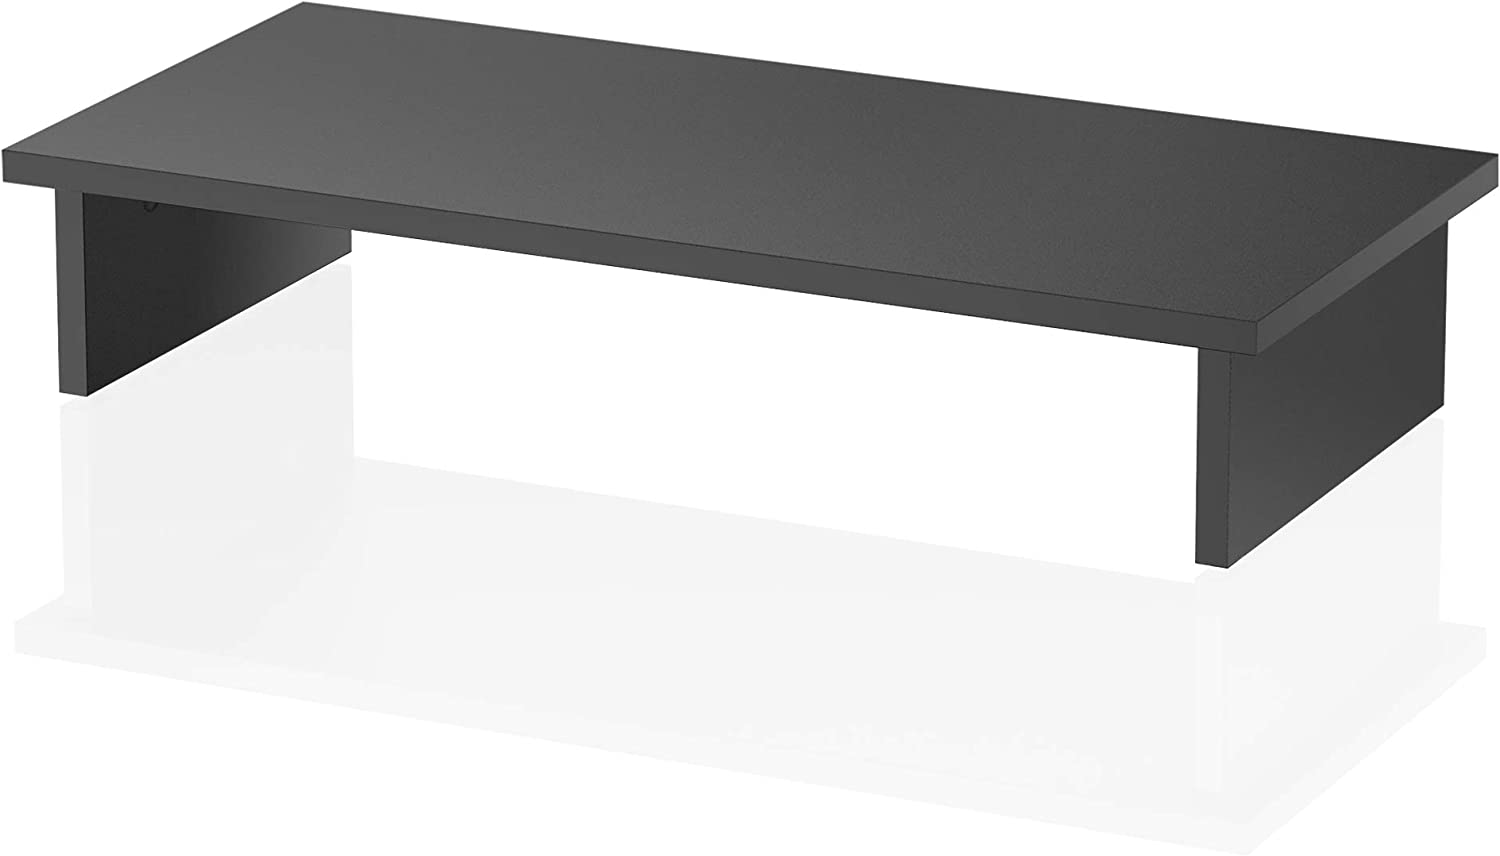 FITUEYES Computer Monitor Stand TV Shelf Riser Printer Machine Stand 4.7'' High Elevated Desktop TV Stand for Xbox One/Component/Flat Screen TV